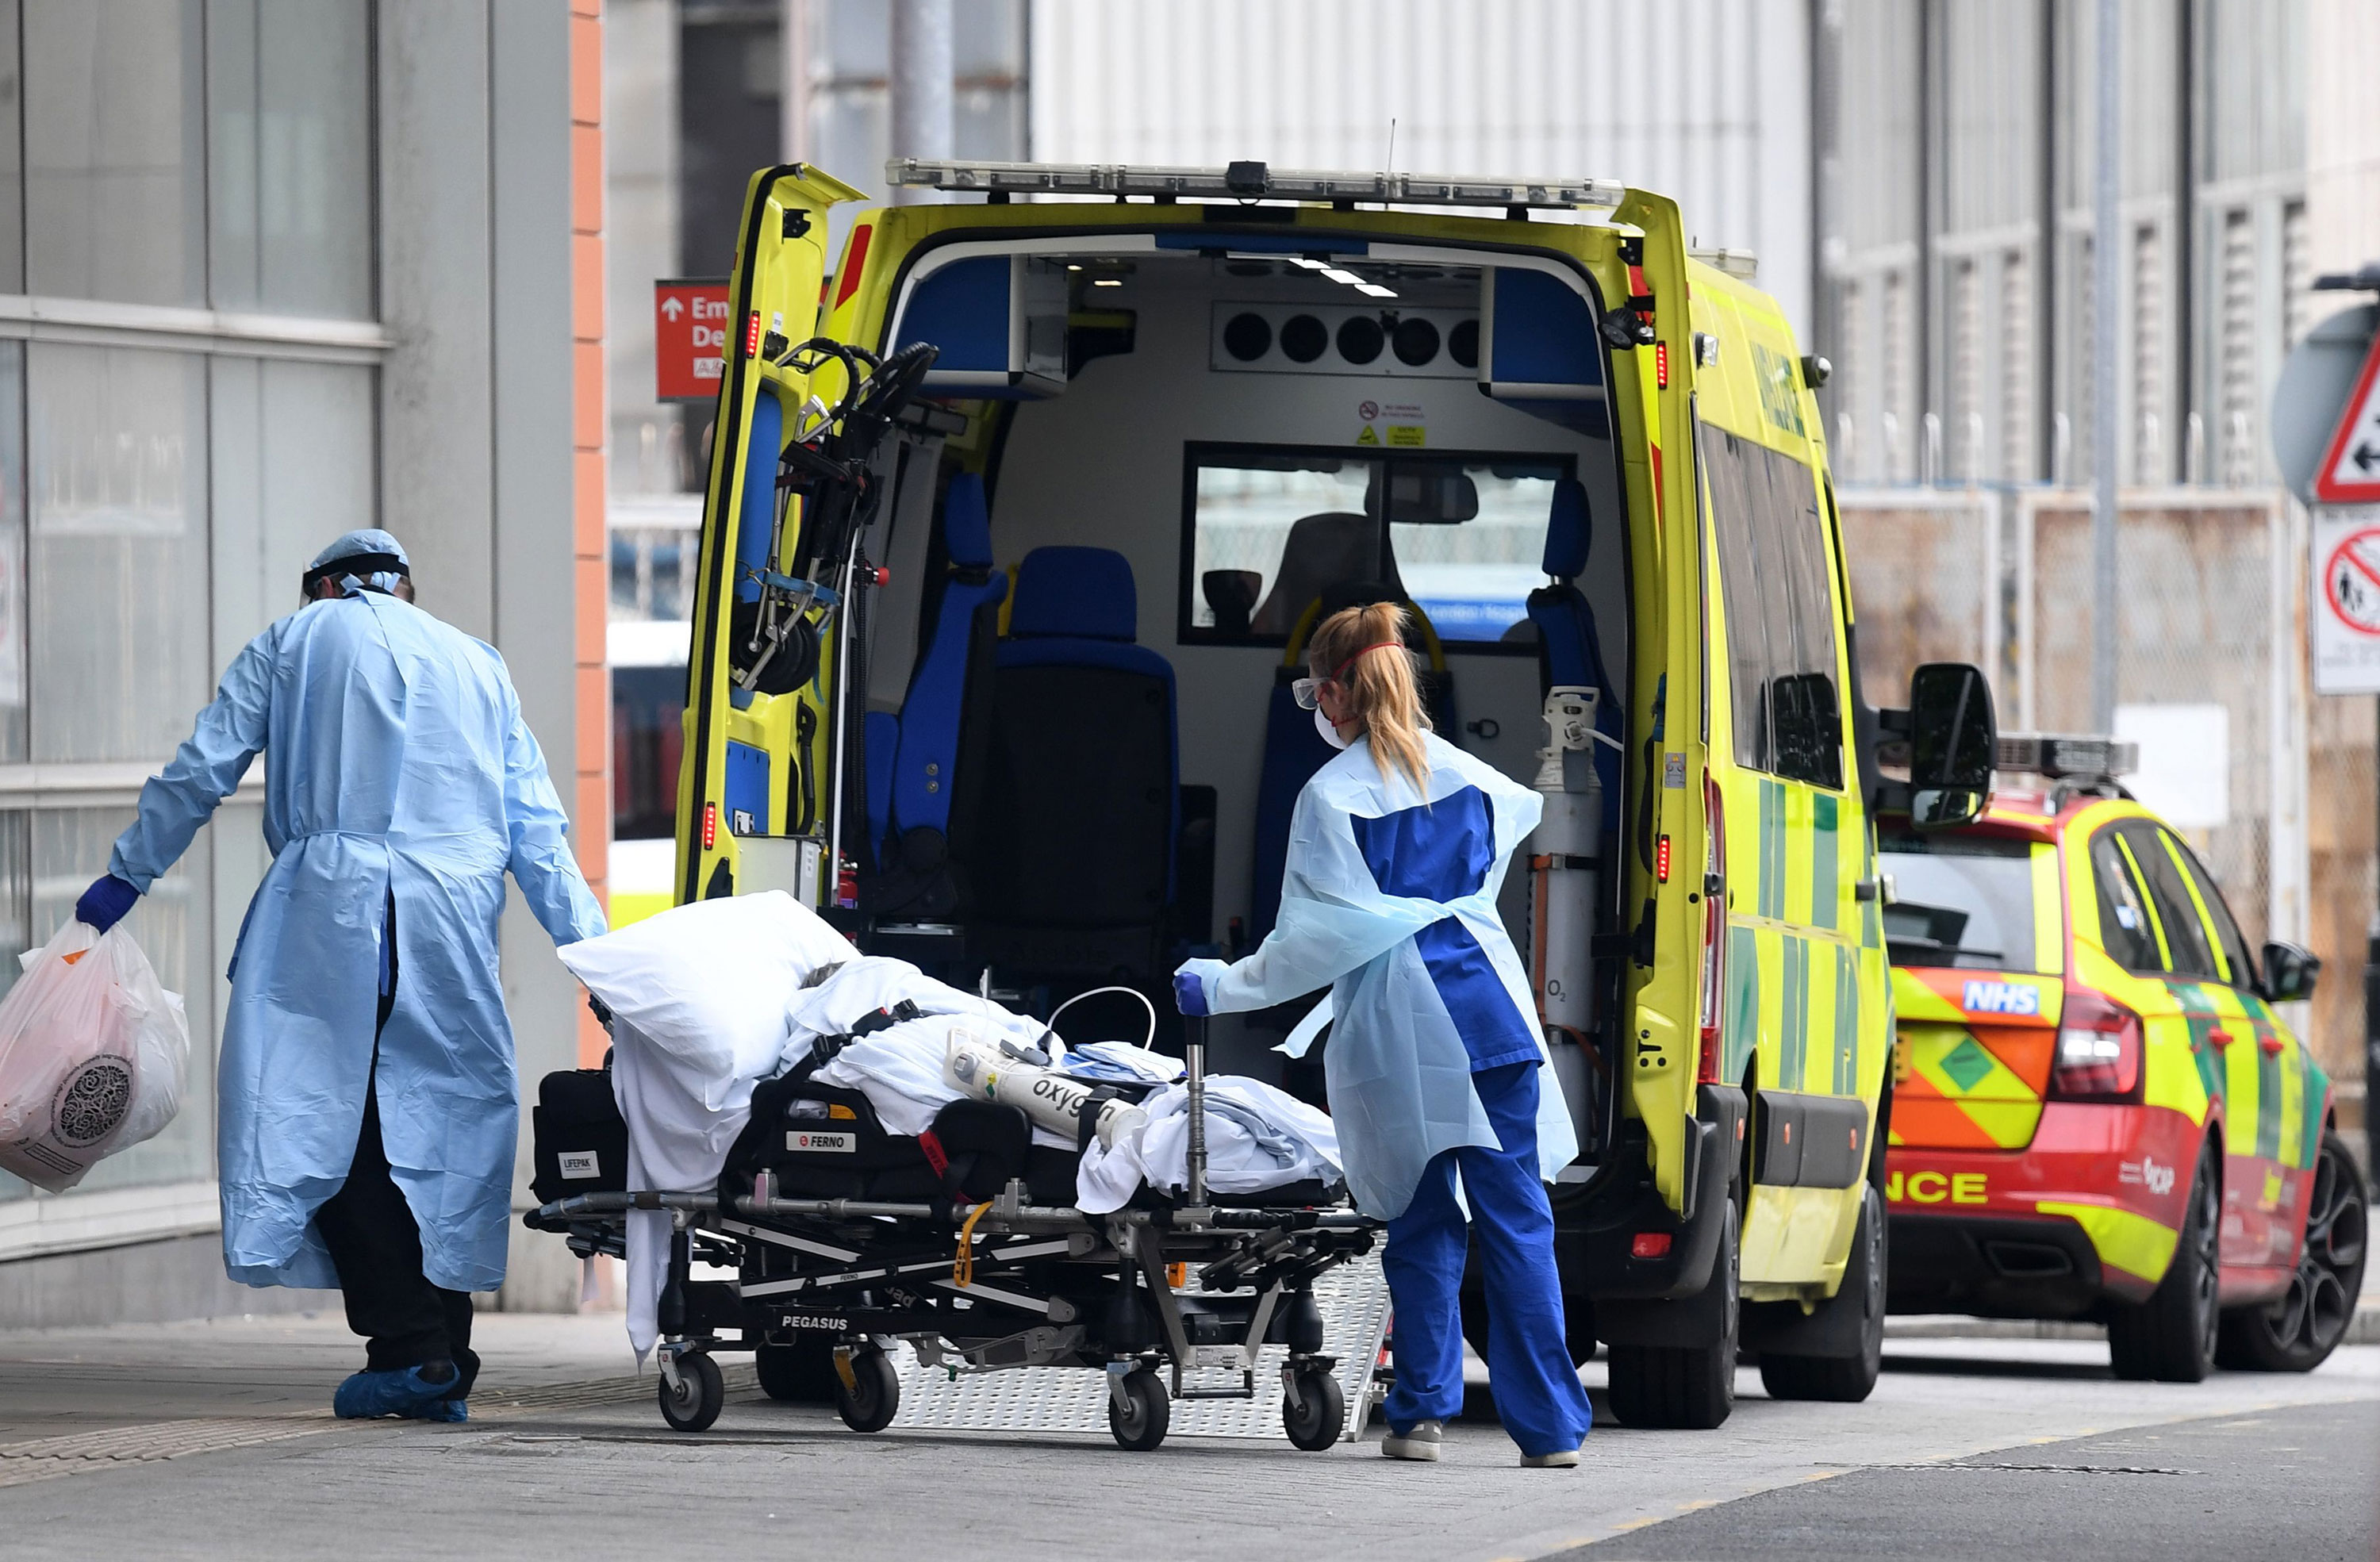 Health workers transfer a patient from an ambulance into The Royal London Hospital in London on April 18.